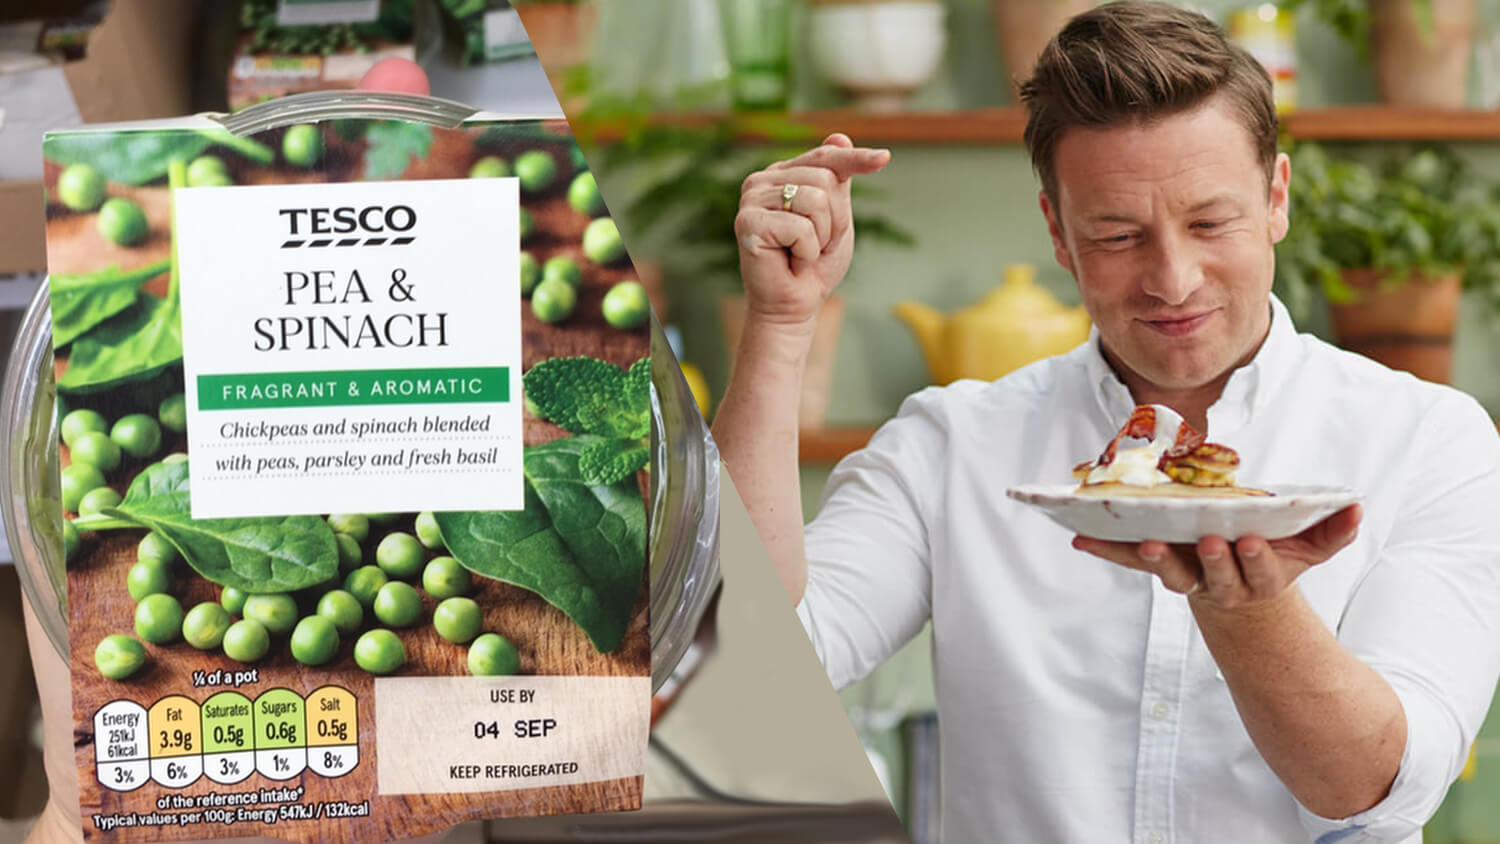 Jamie Oliver Partners With Tesco On Plant-Based Eating Program, the Little Helps Plan